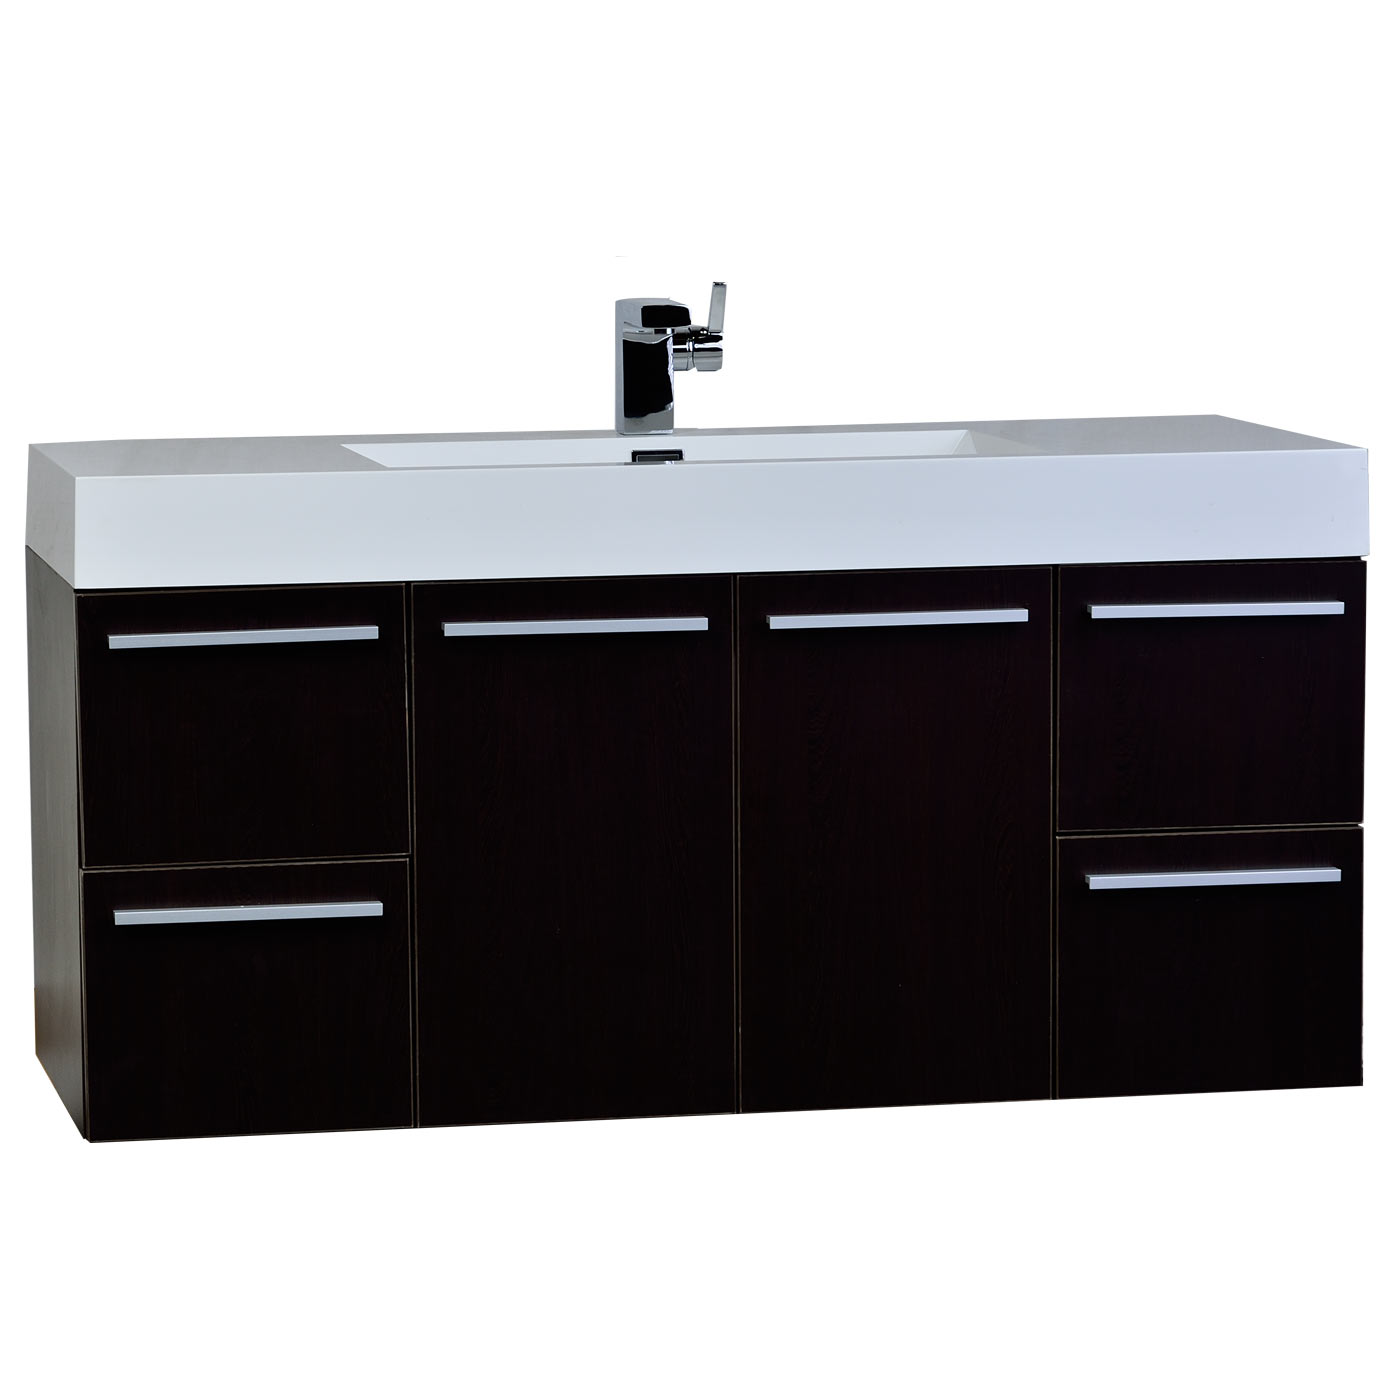 Inch Wall Mount Contemporary Bathroom Vanity In Espresso TN - Contemporary bathroom furniture cabinets